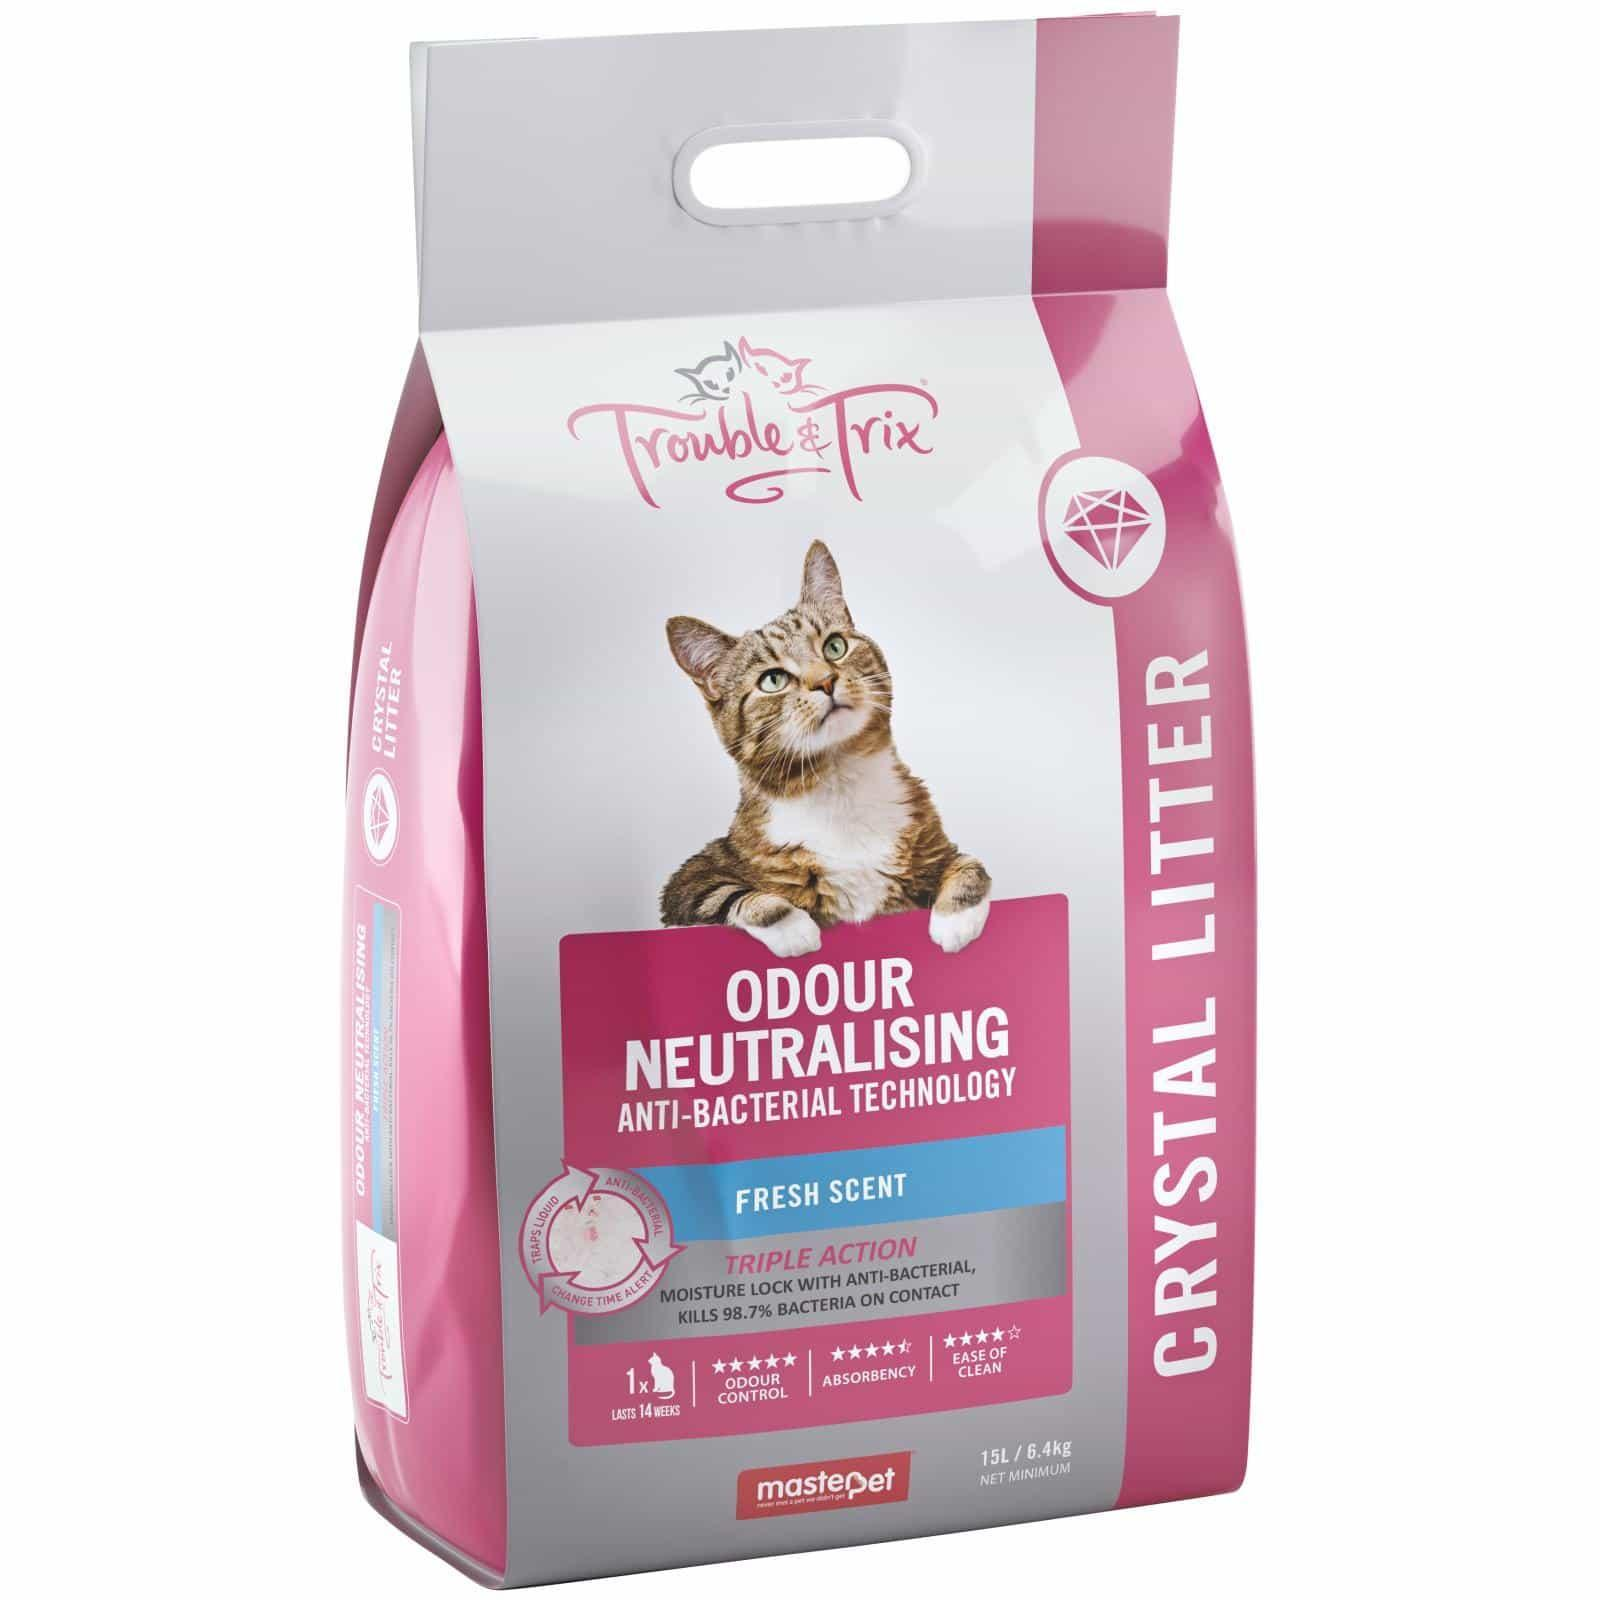 Trouble N Trix Trouble & Trix Fresh Scent Anti Bacterial Crystal Cat Litter